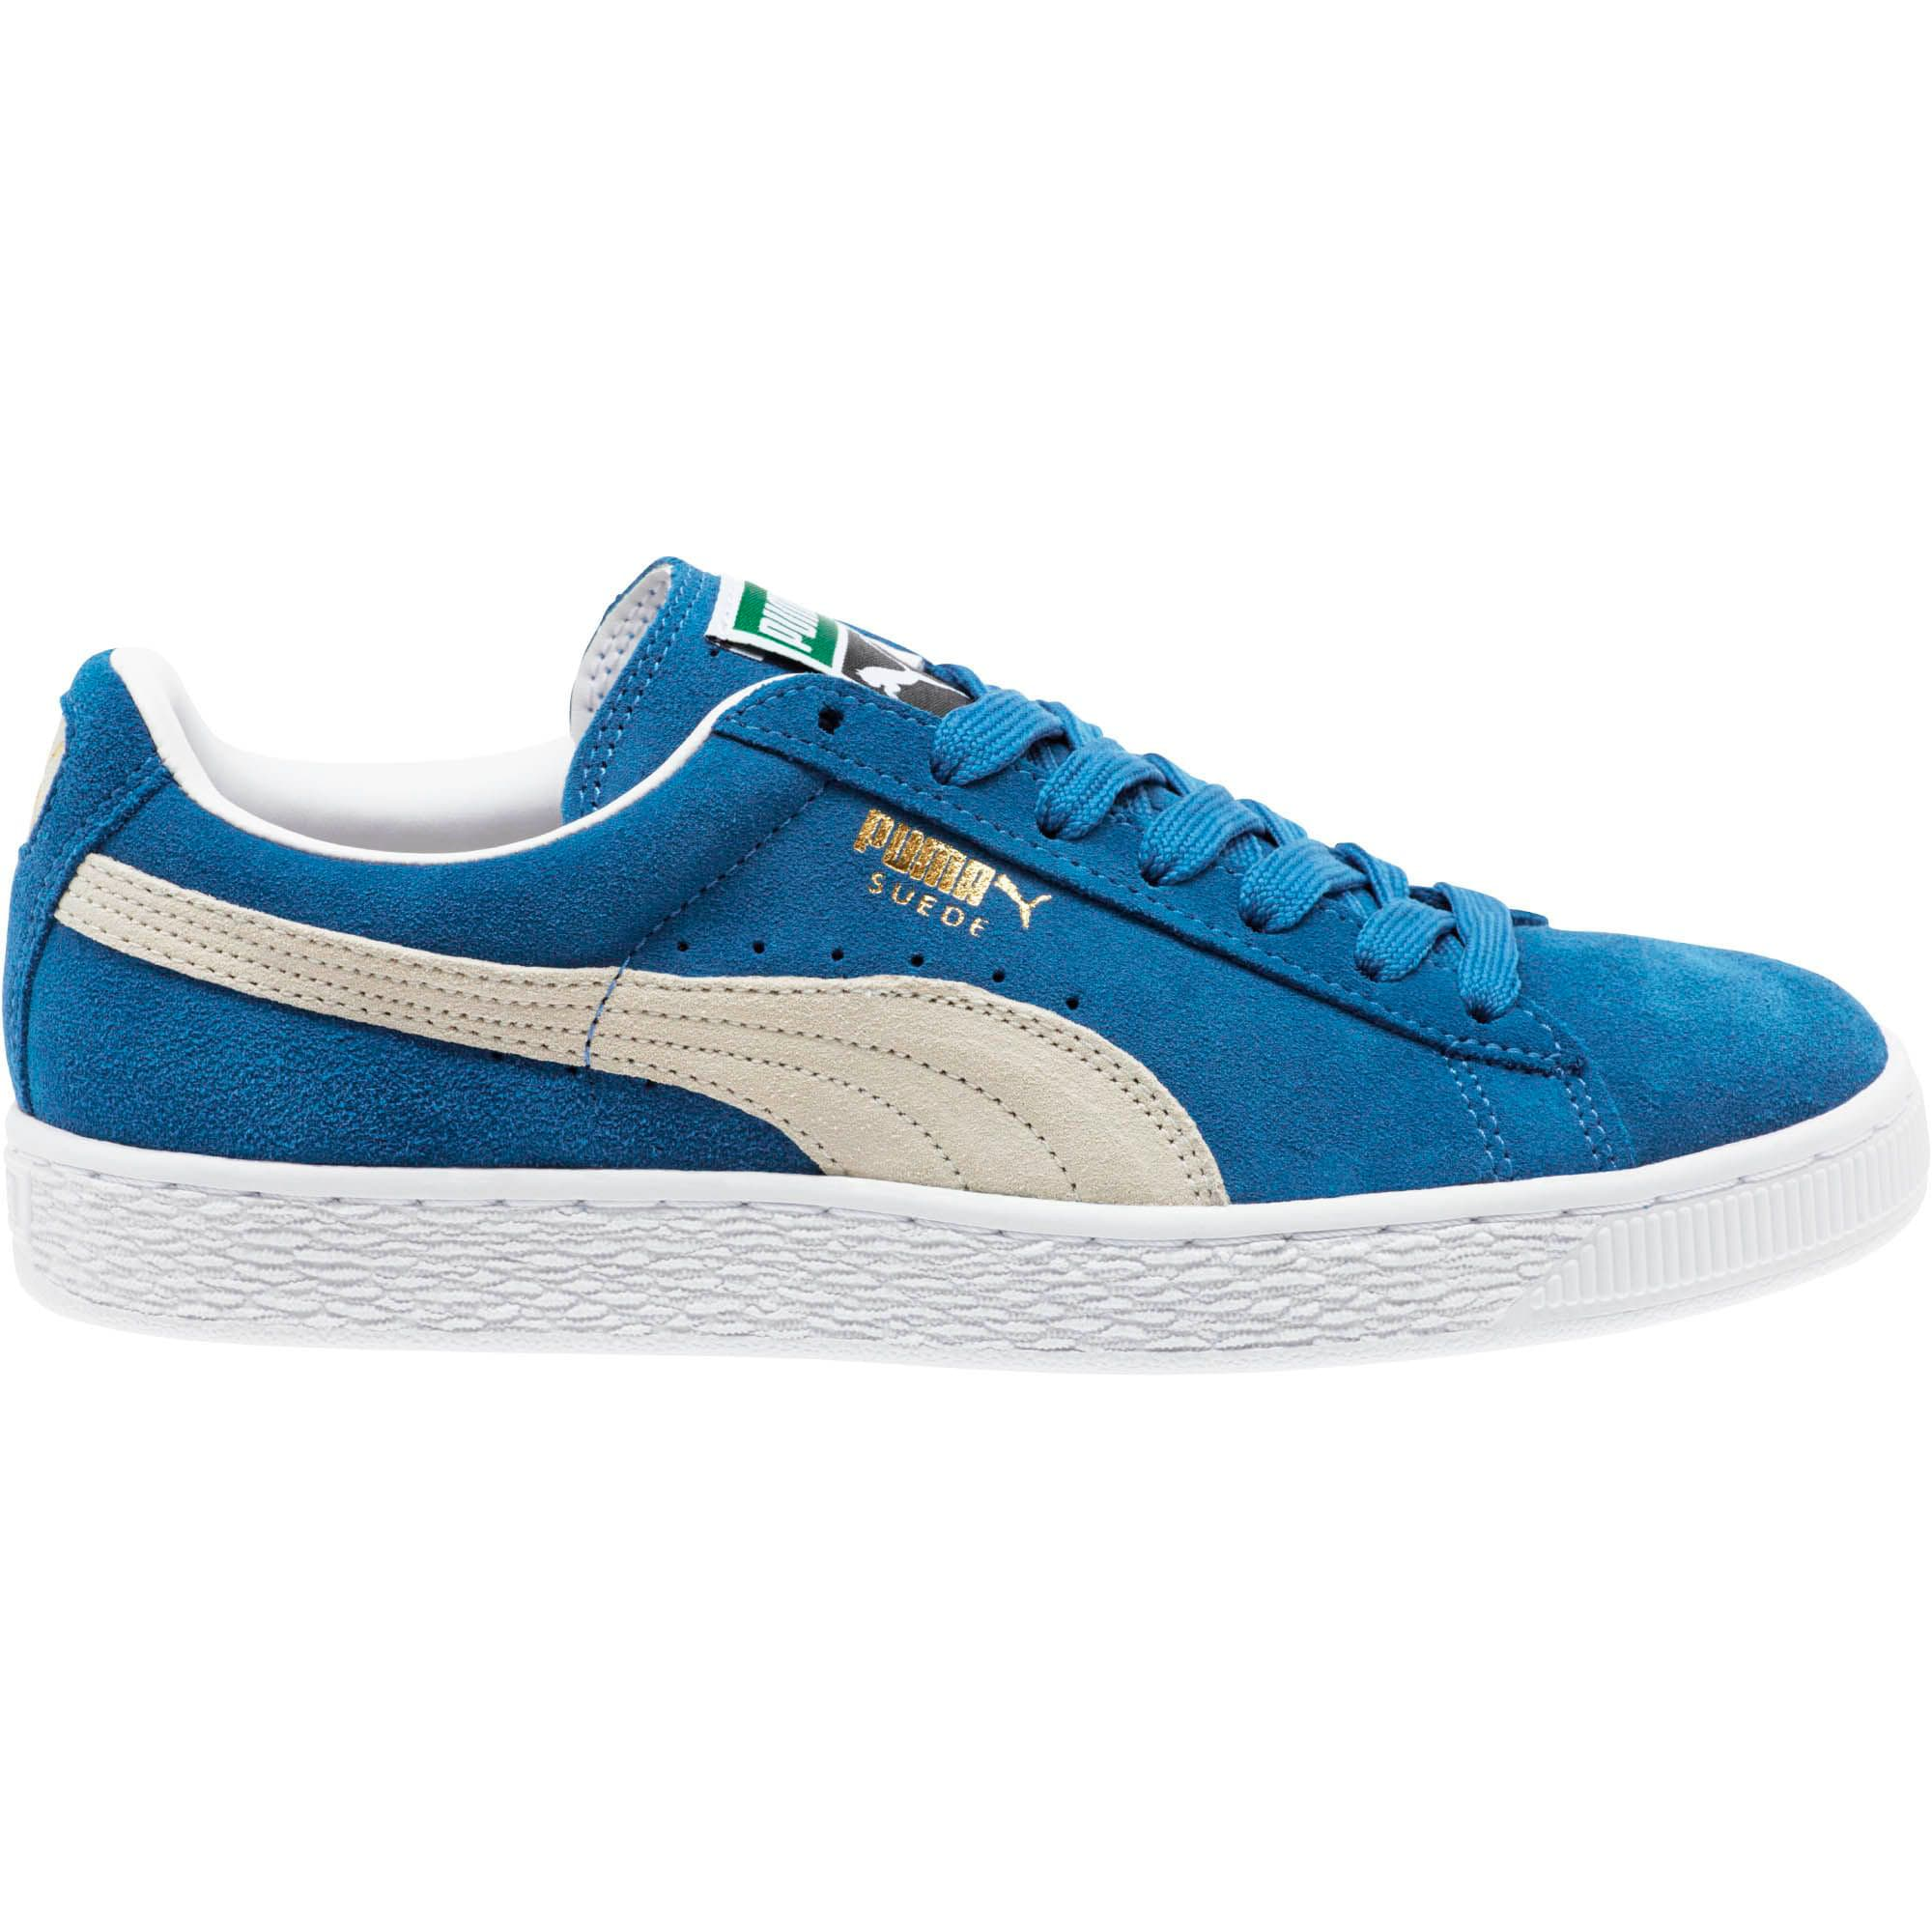 Thumbnail 6 of Suede Classic + Women's Sneakers, olympian blue-white, medium